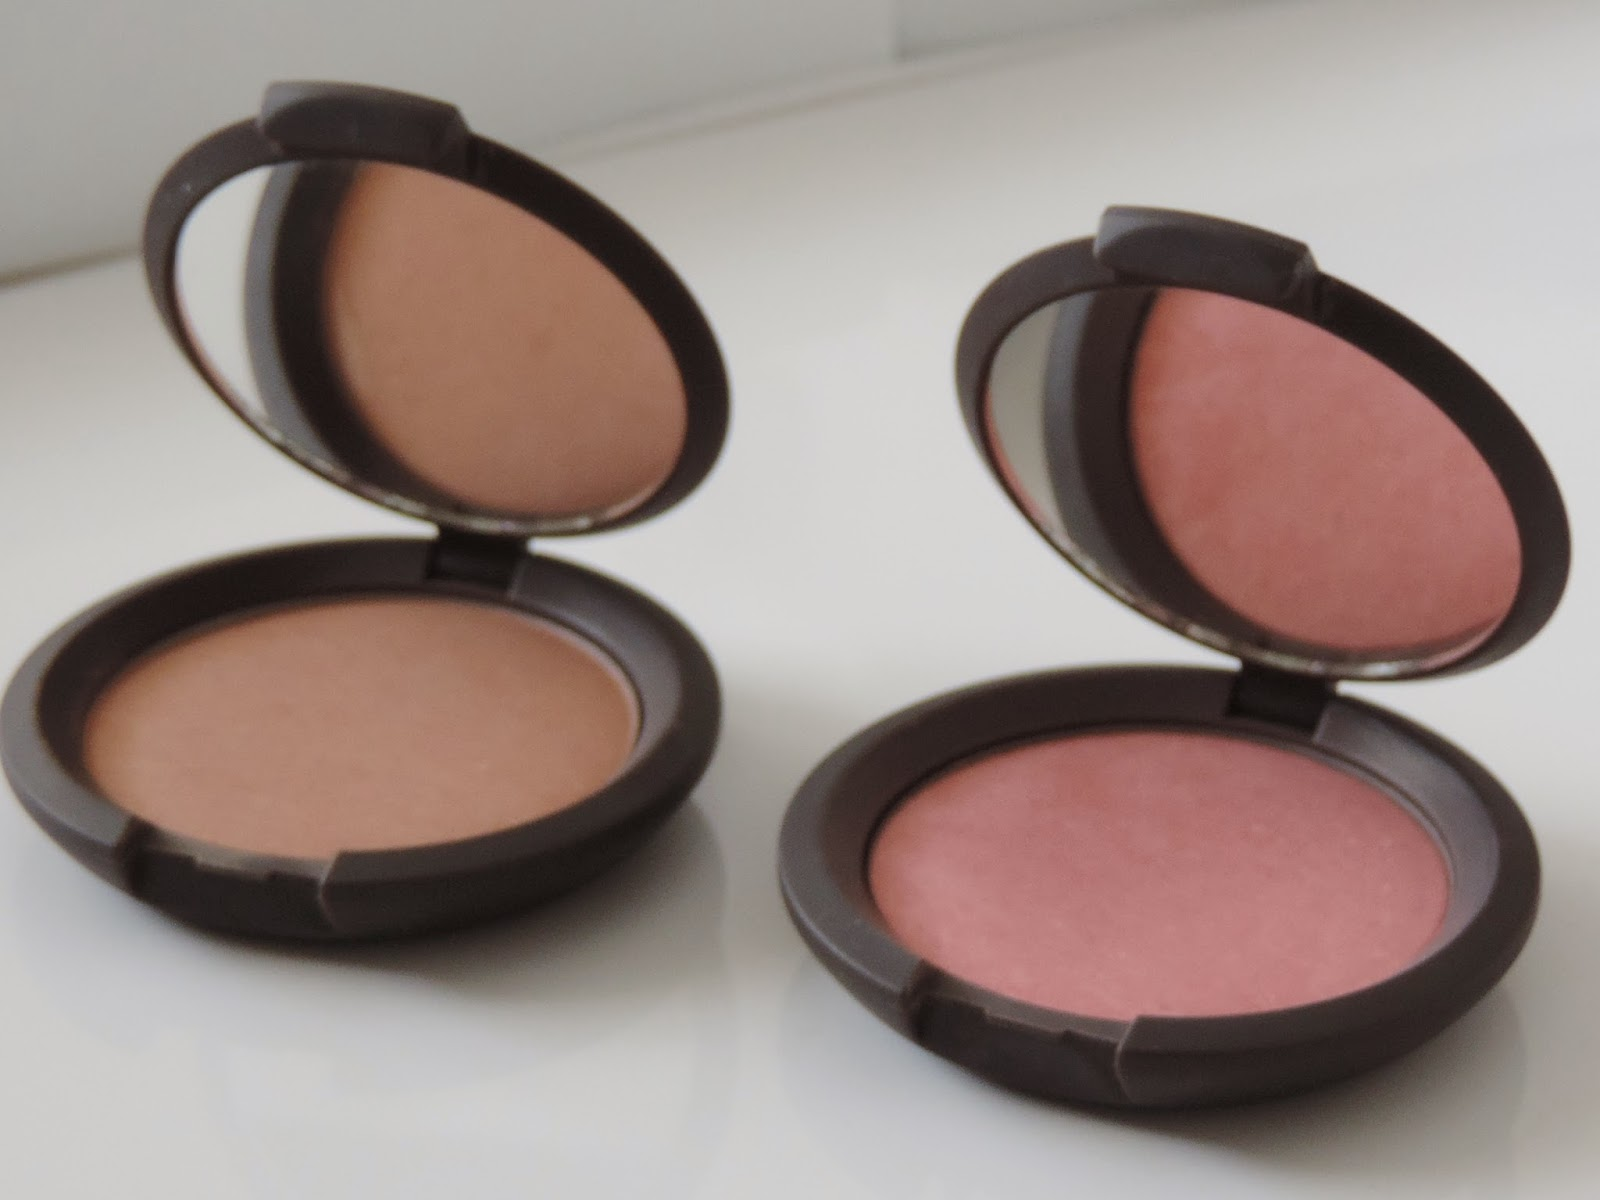 Becca Mineral Blushes (from left) Wild Honey, Flowerchild